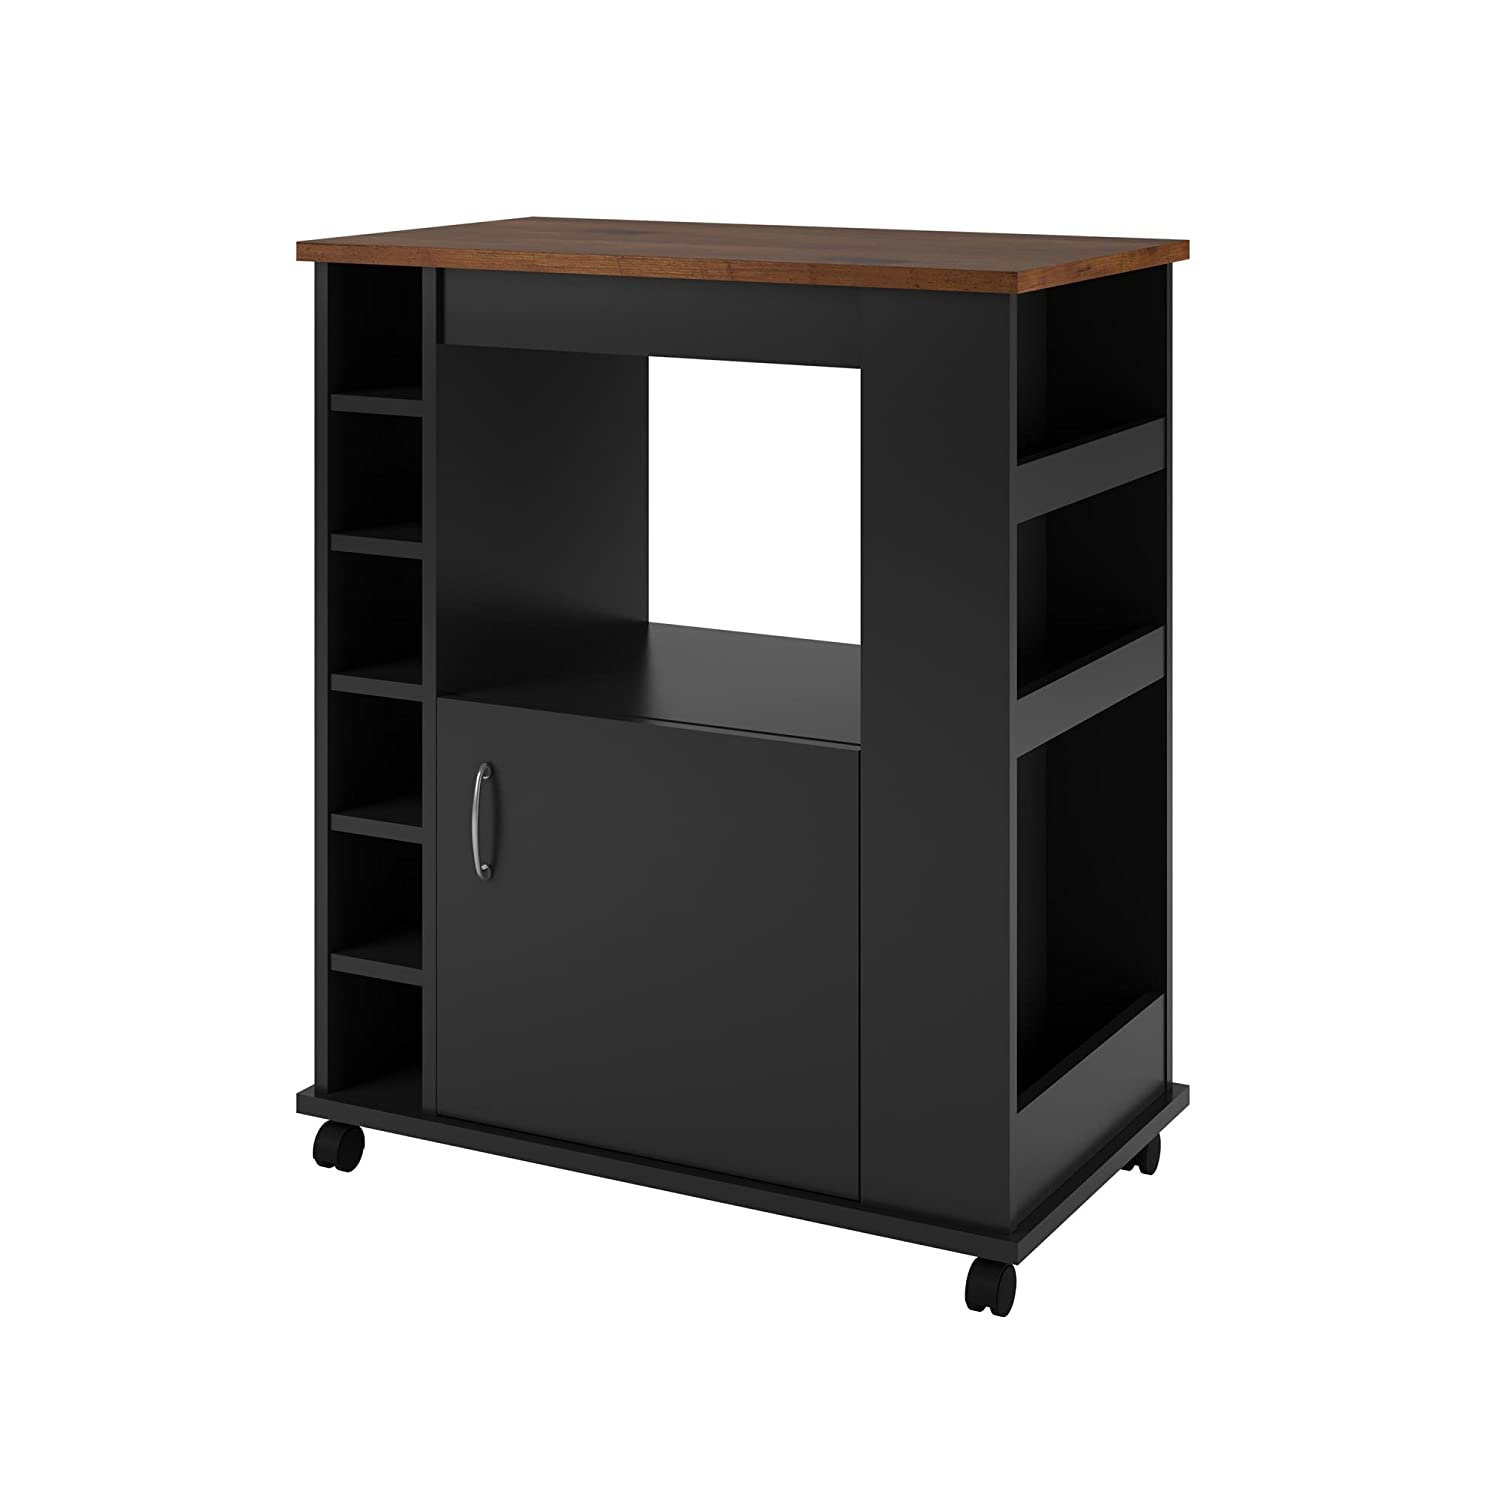 Altra Furniture Williams Kitchen Cart, Black/Old Fashioned Pine 5276056PCOM